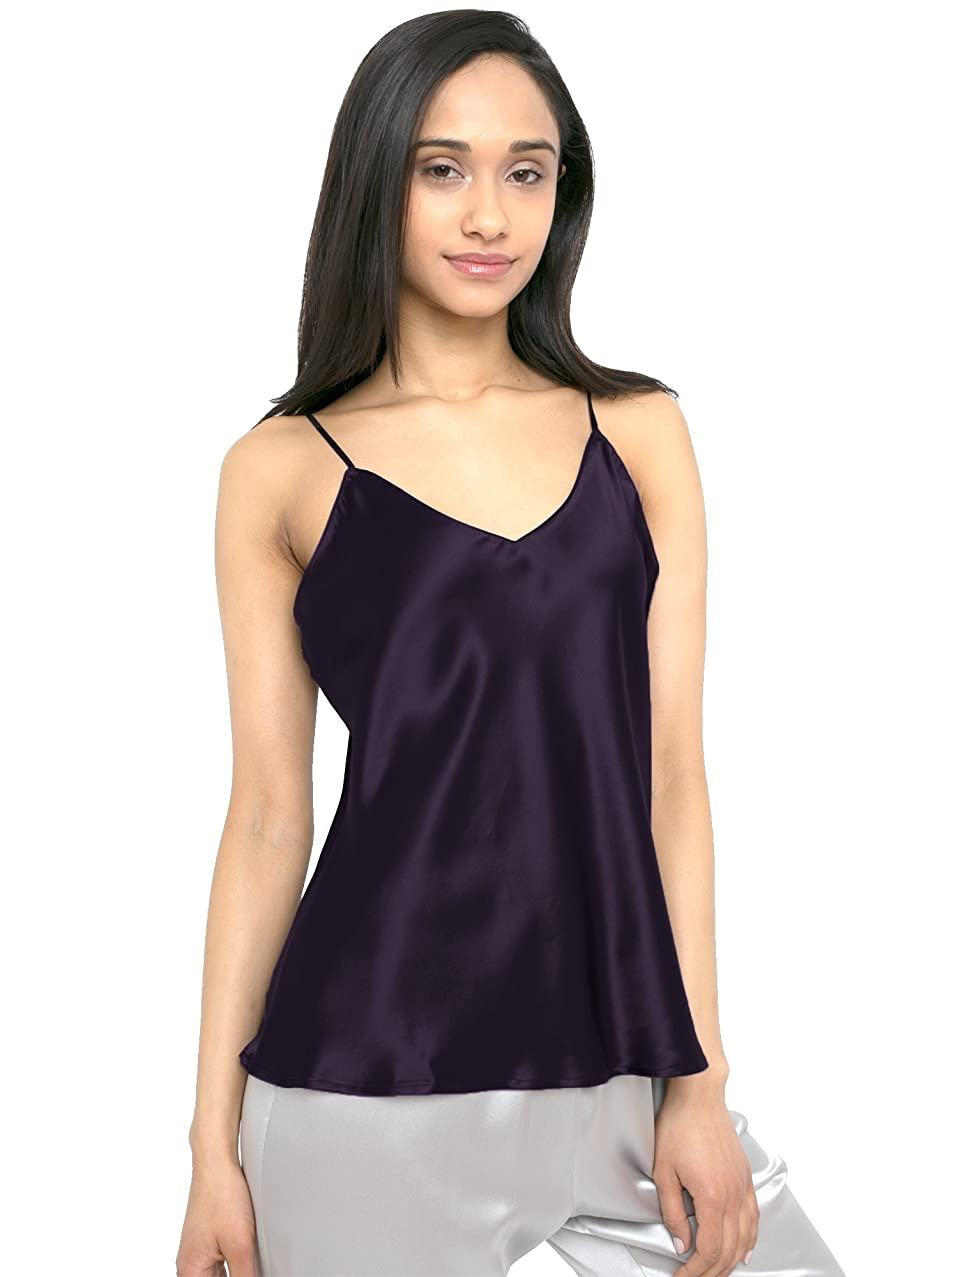 MYK 21 Momme 100% Pure Silk Camisole with Adjustable Strap for Women, 100% Mulberry Silk, Lightweight and Breathable